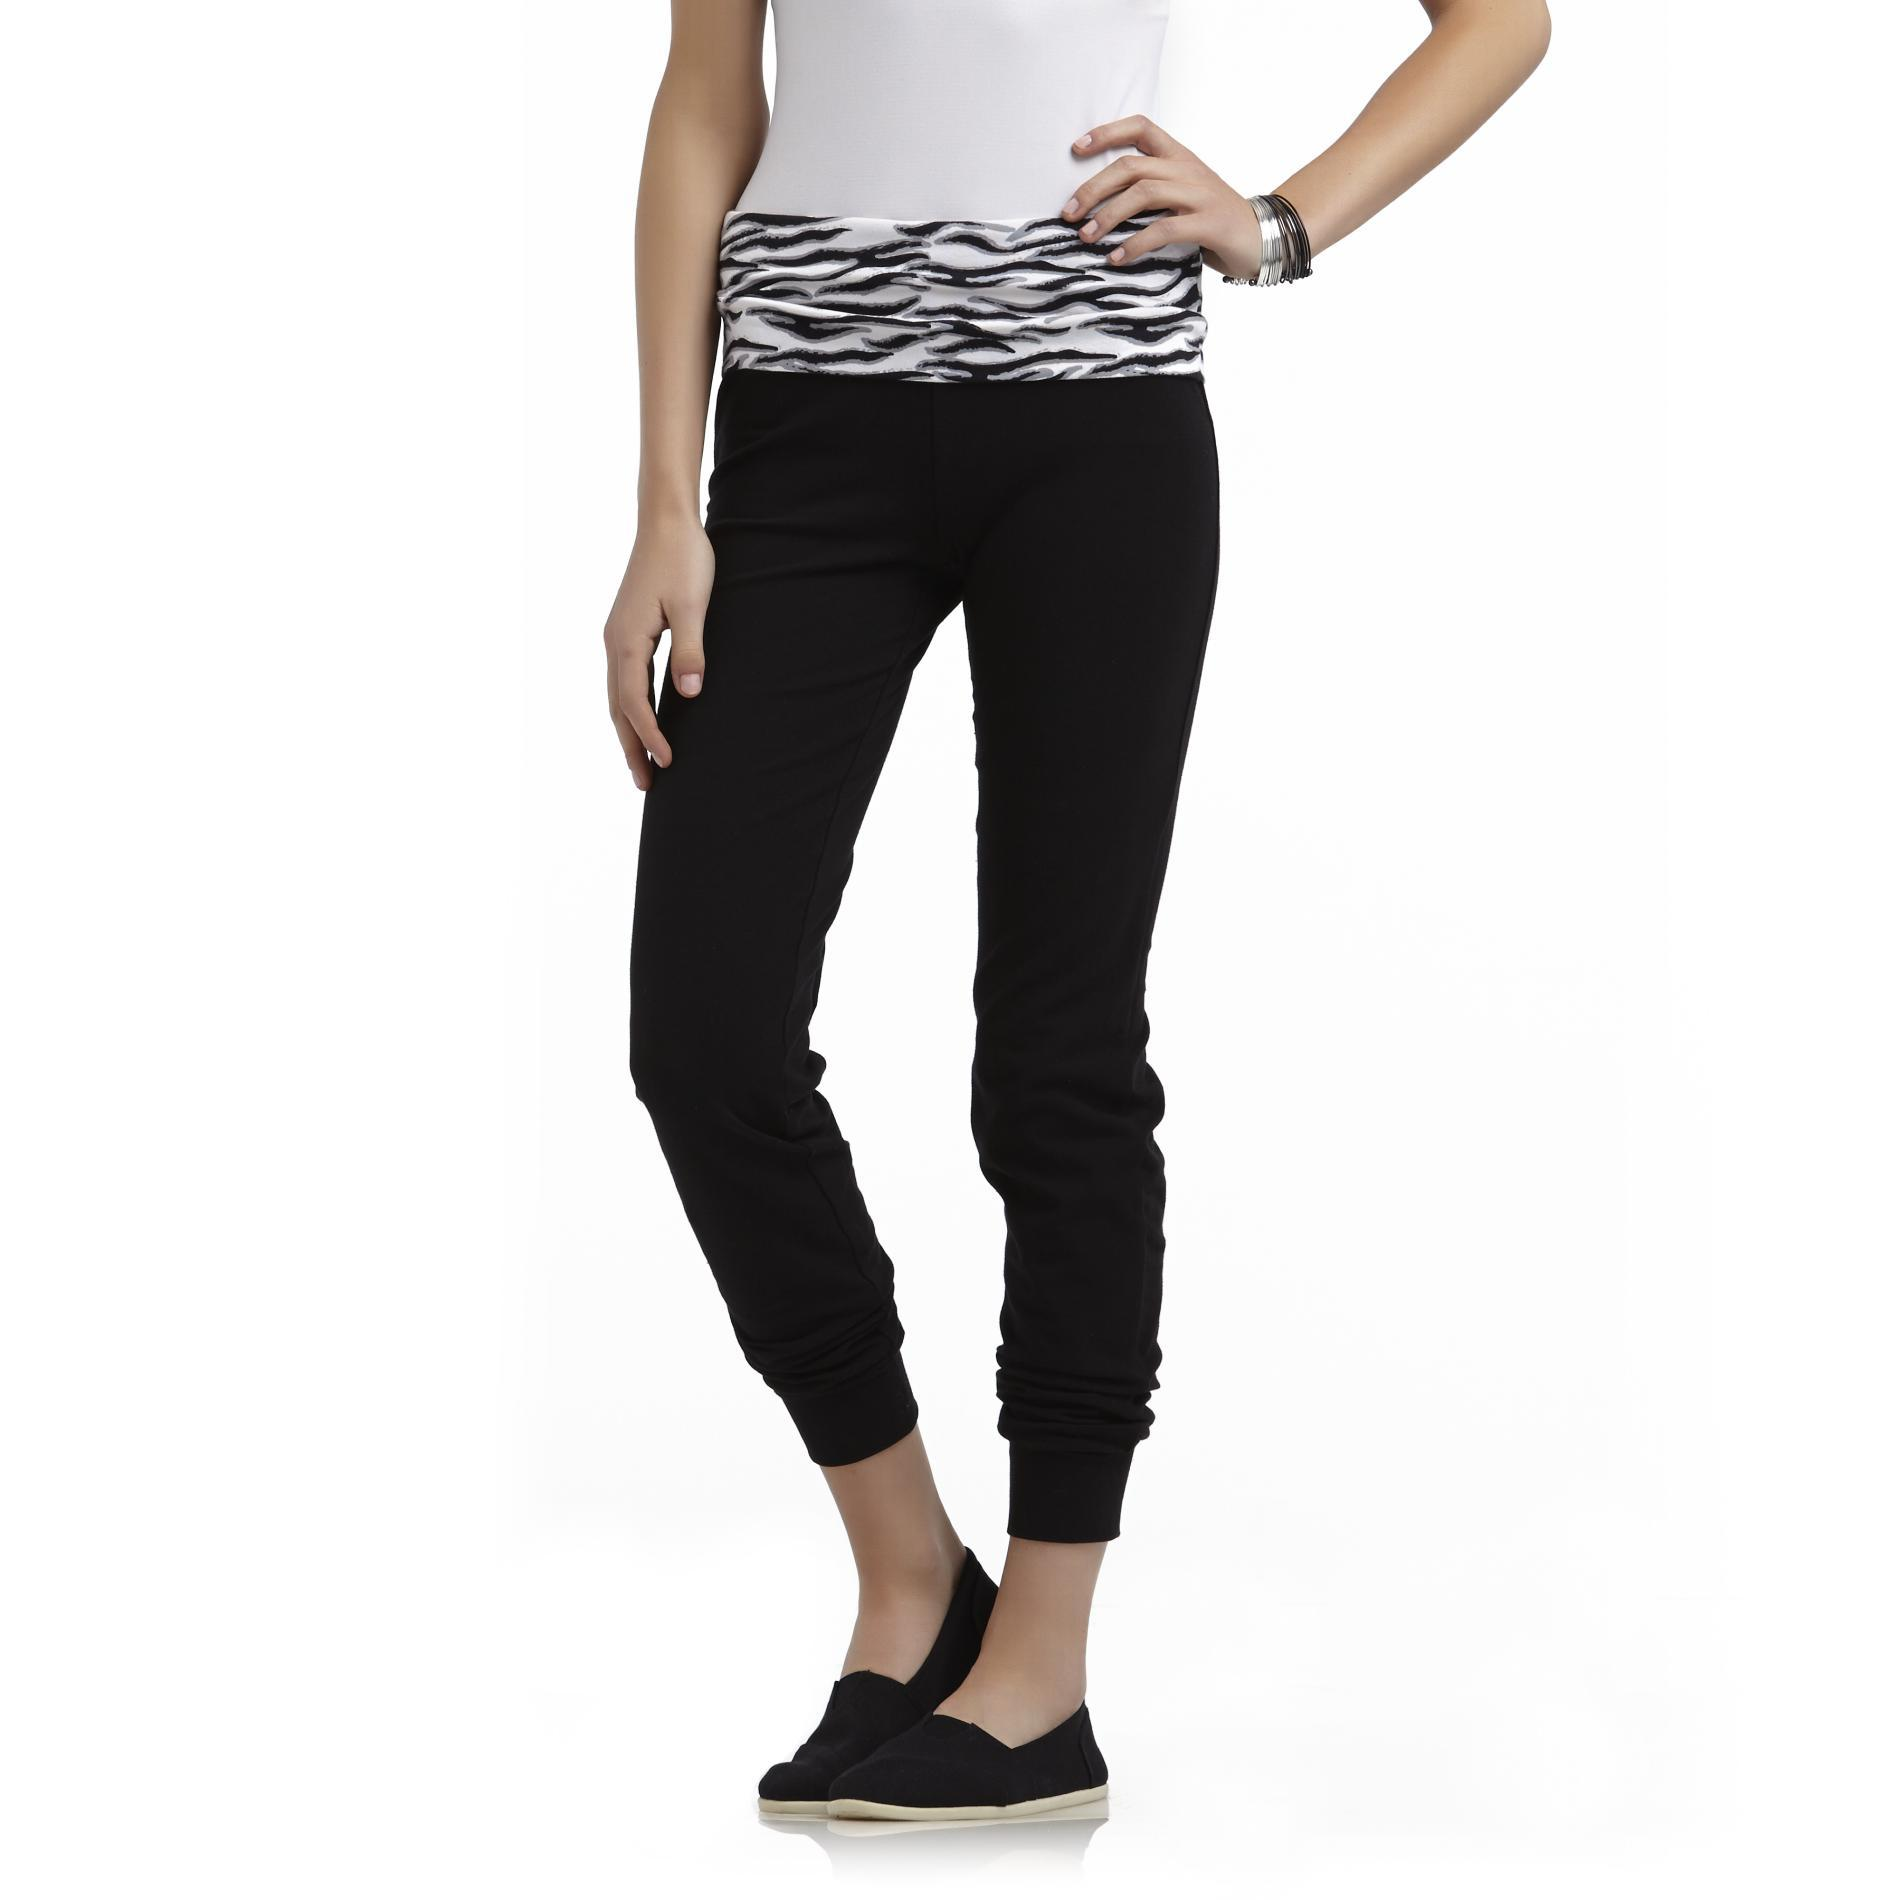 Junior's Yoga Jogging Pants - Zebra